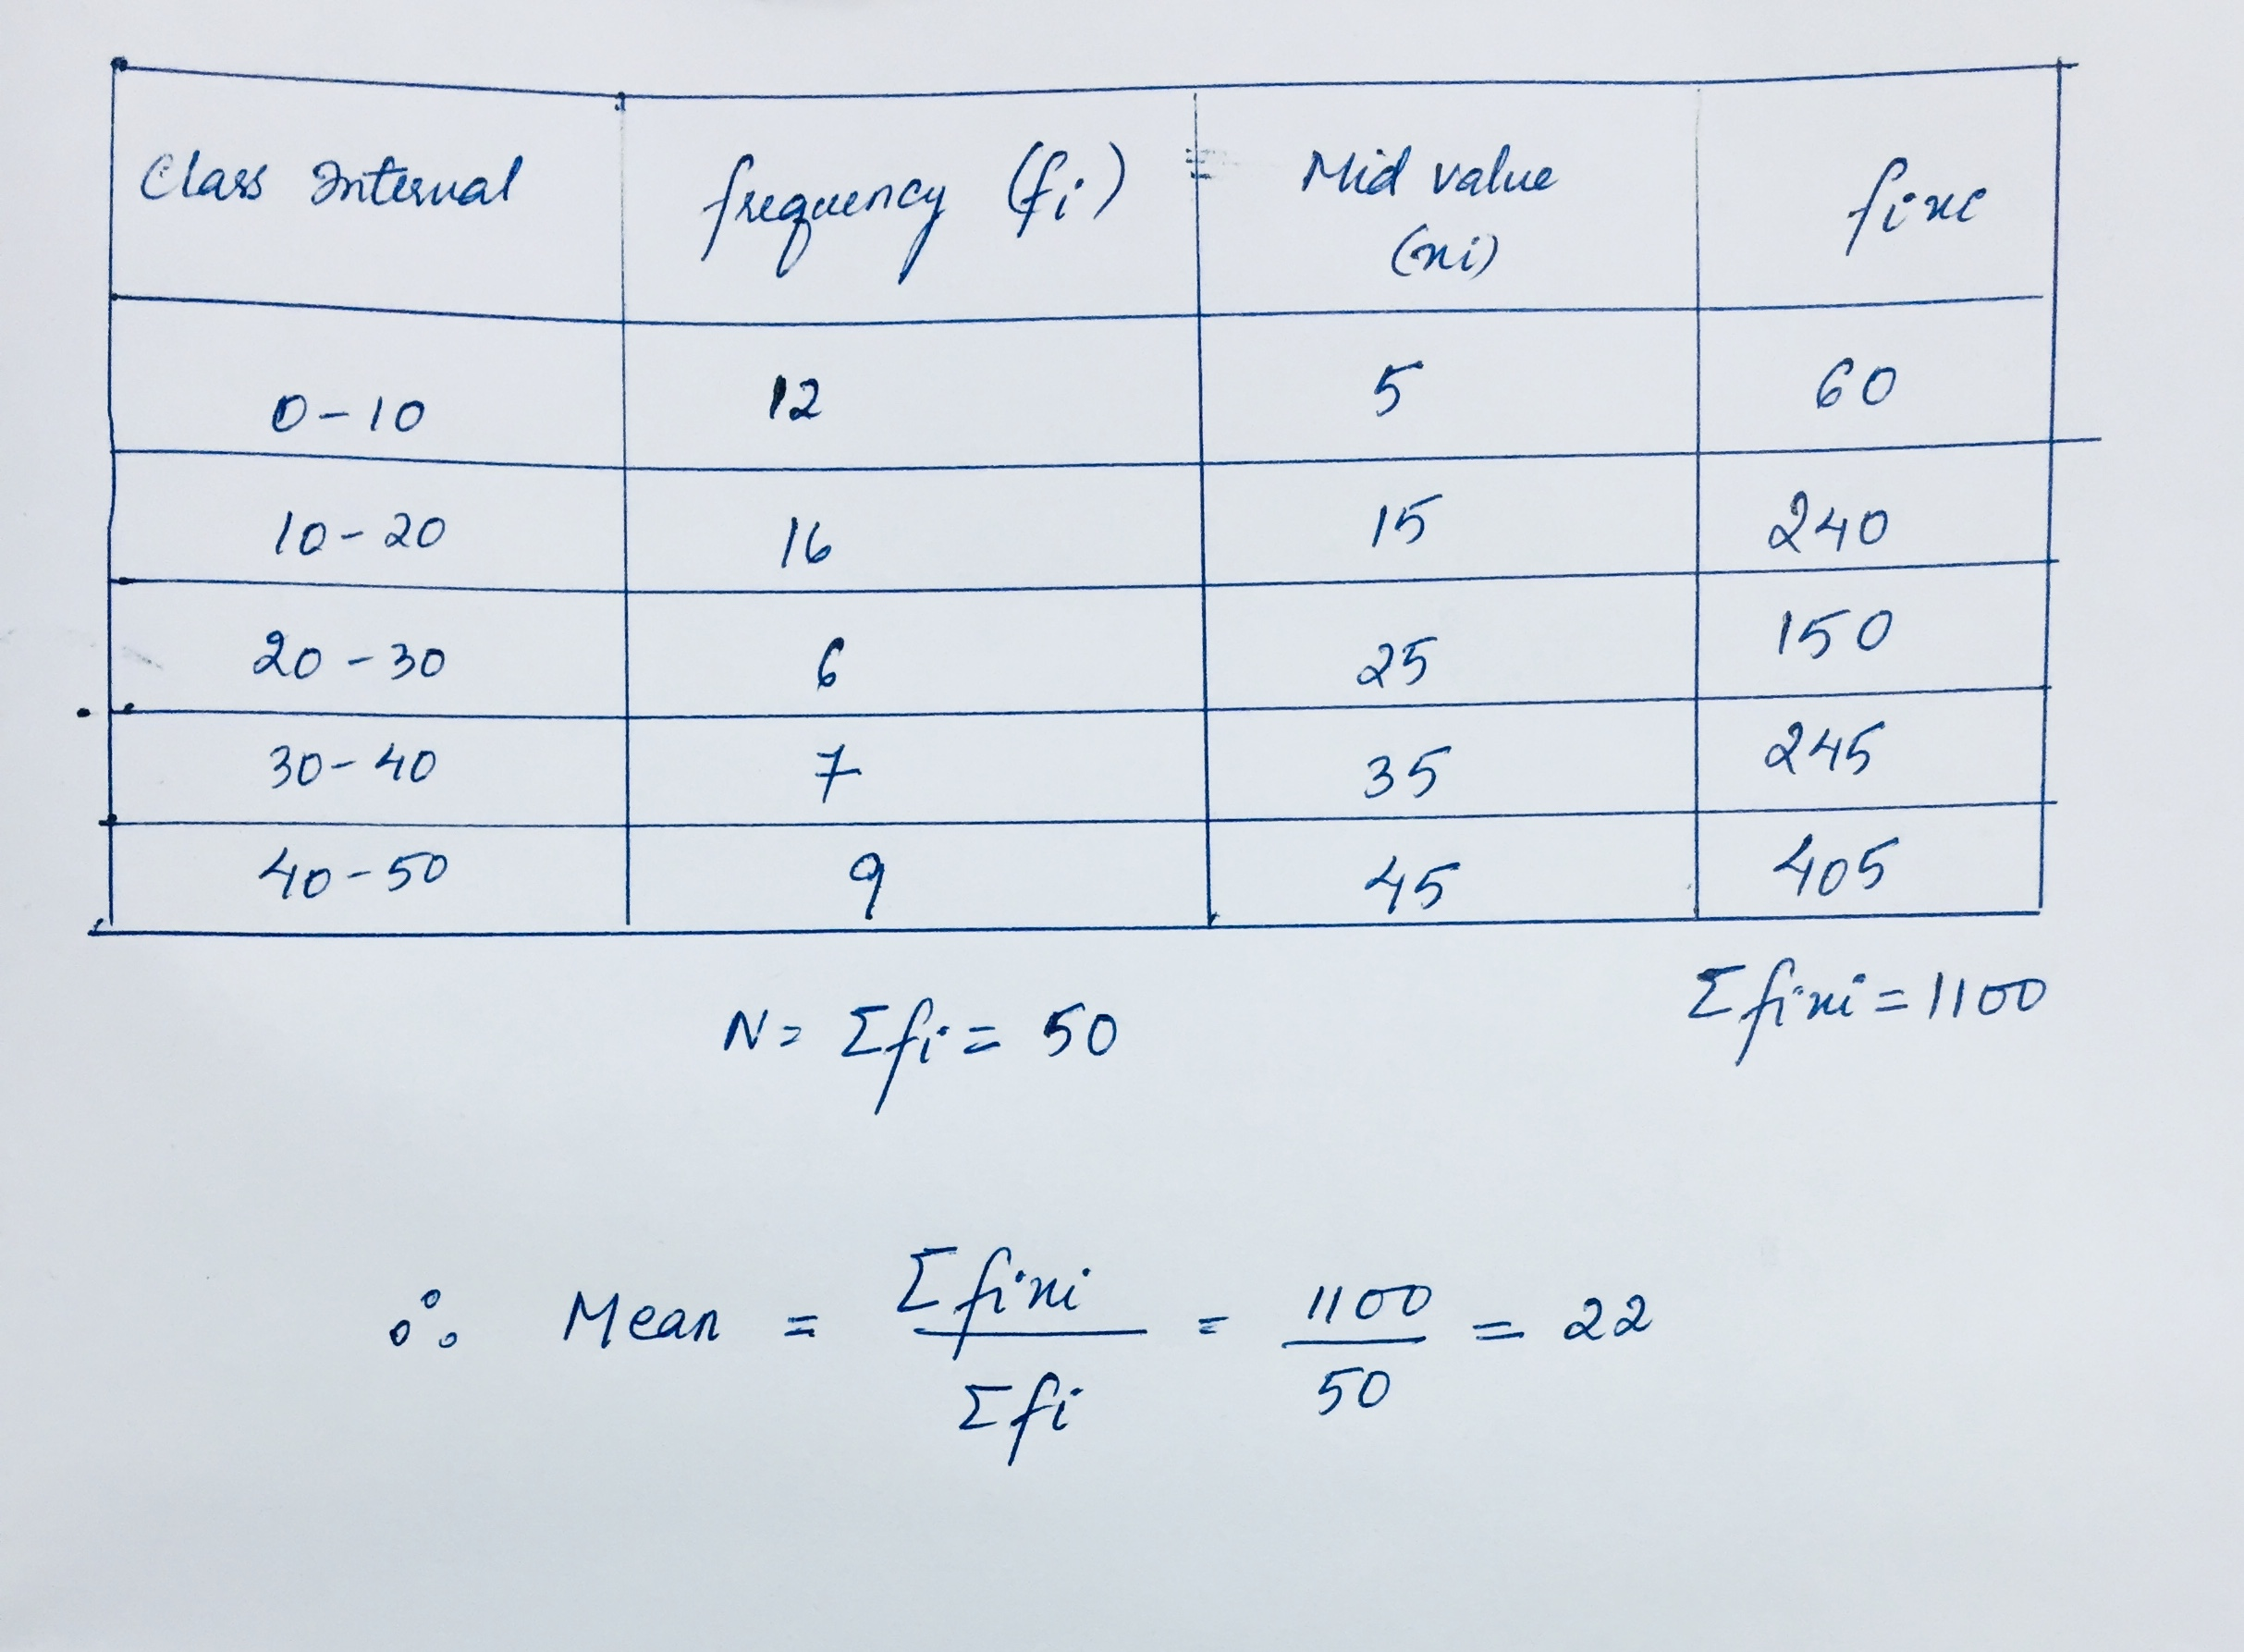 Calculate The Mean Of The Following Distributionci 0 10 10 20 20 30 30 40 40 50b 12 16 6 7 9